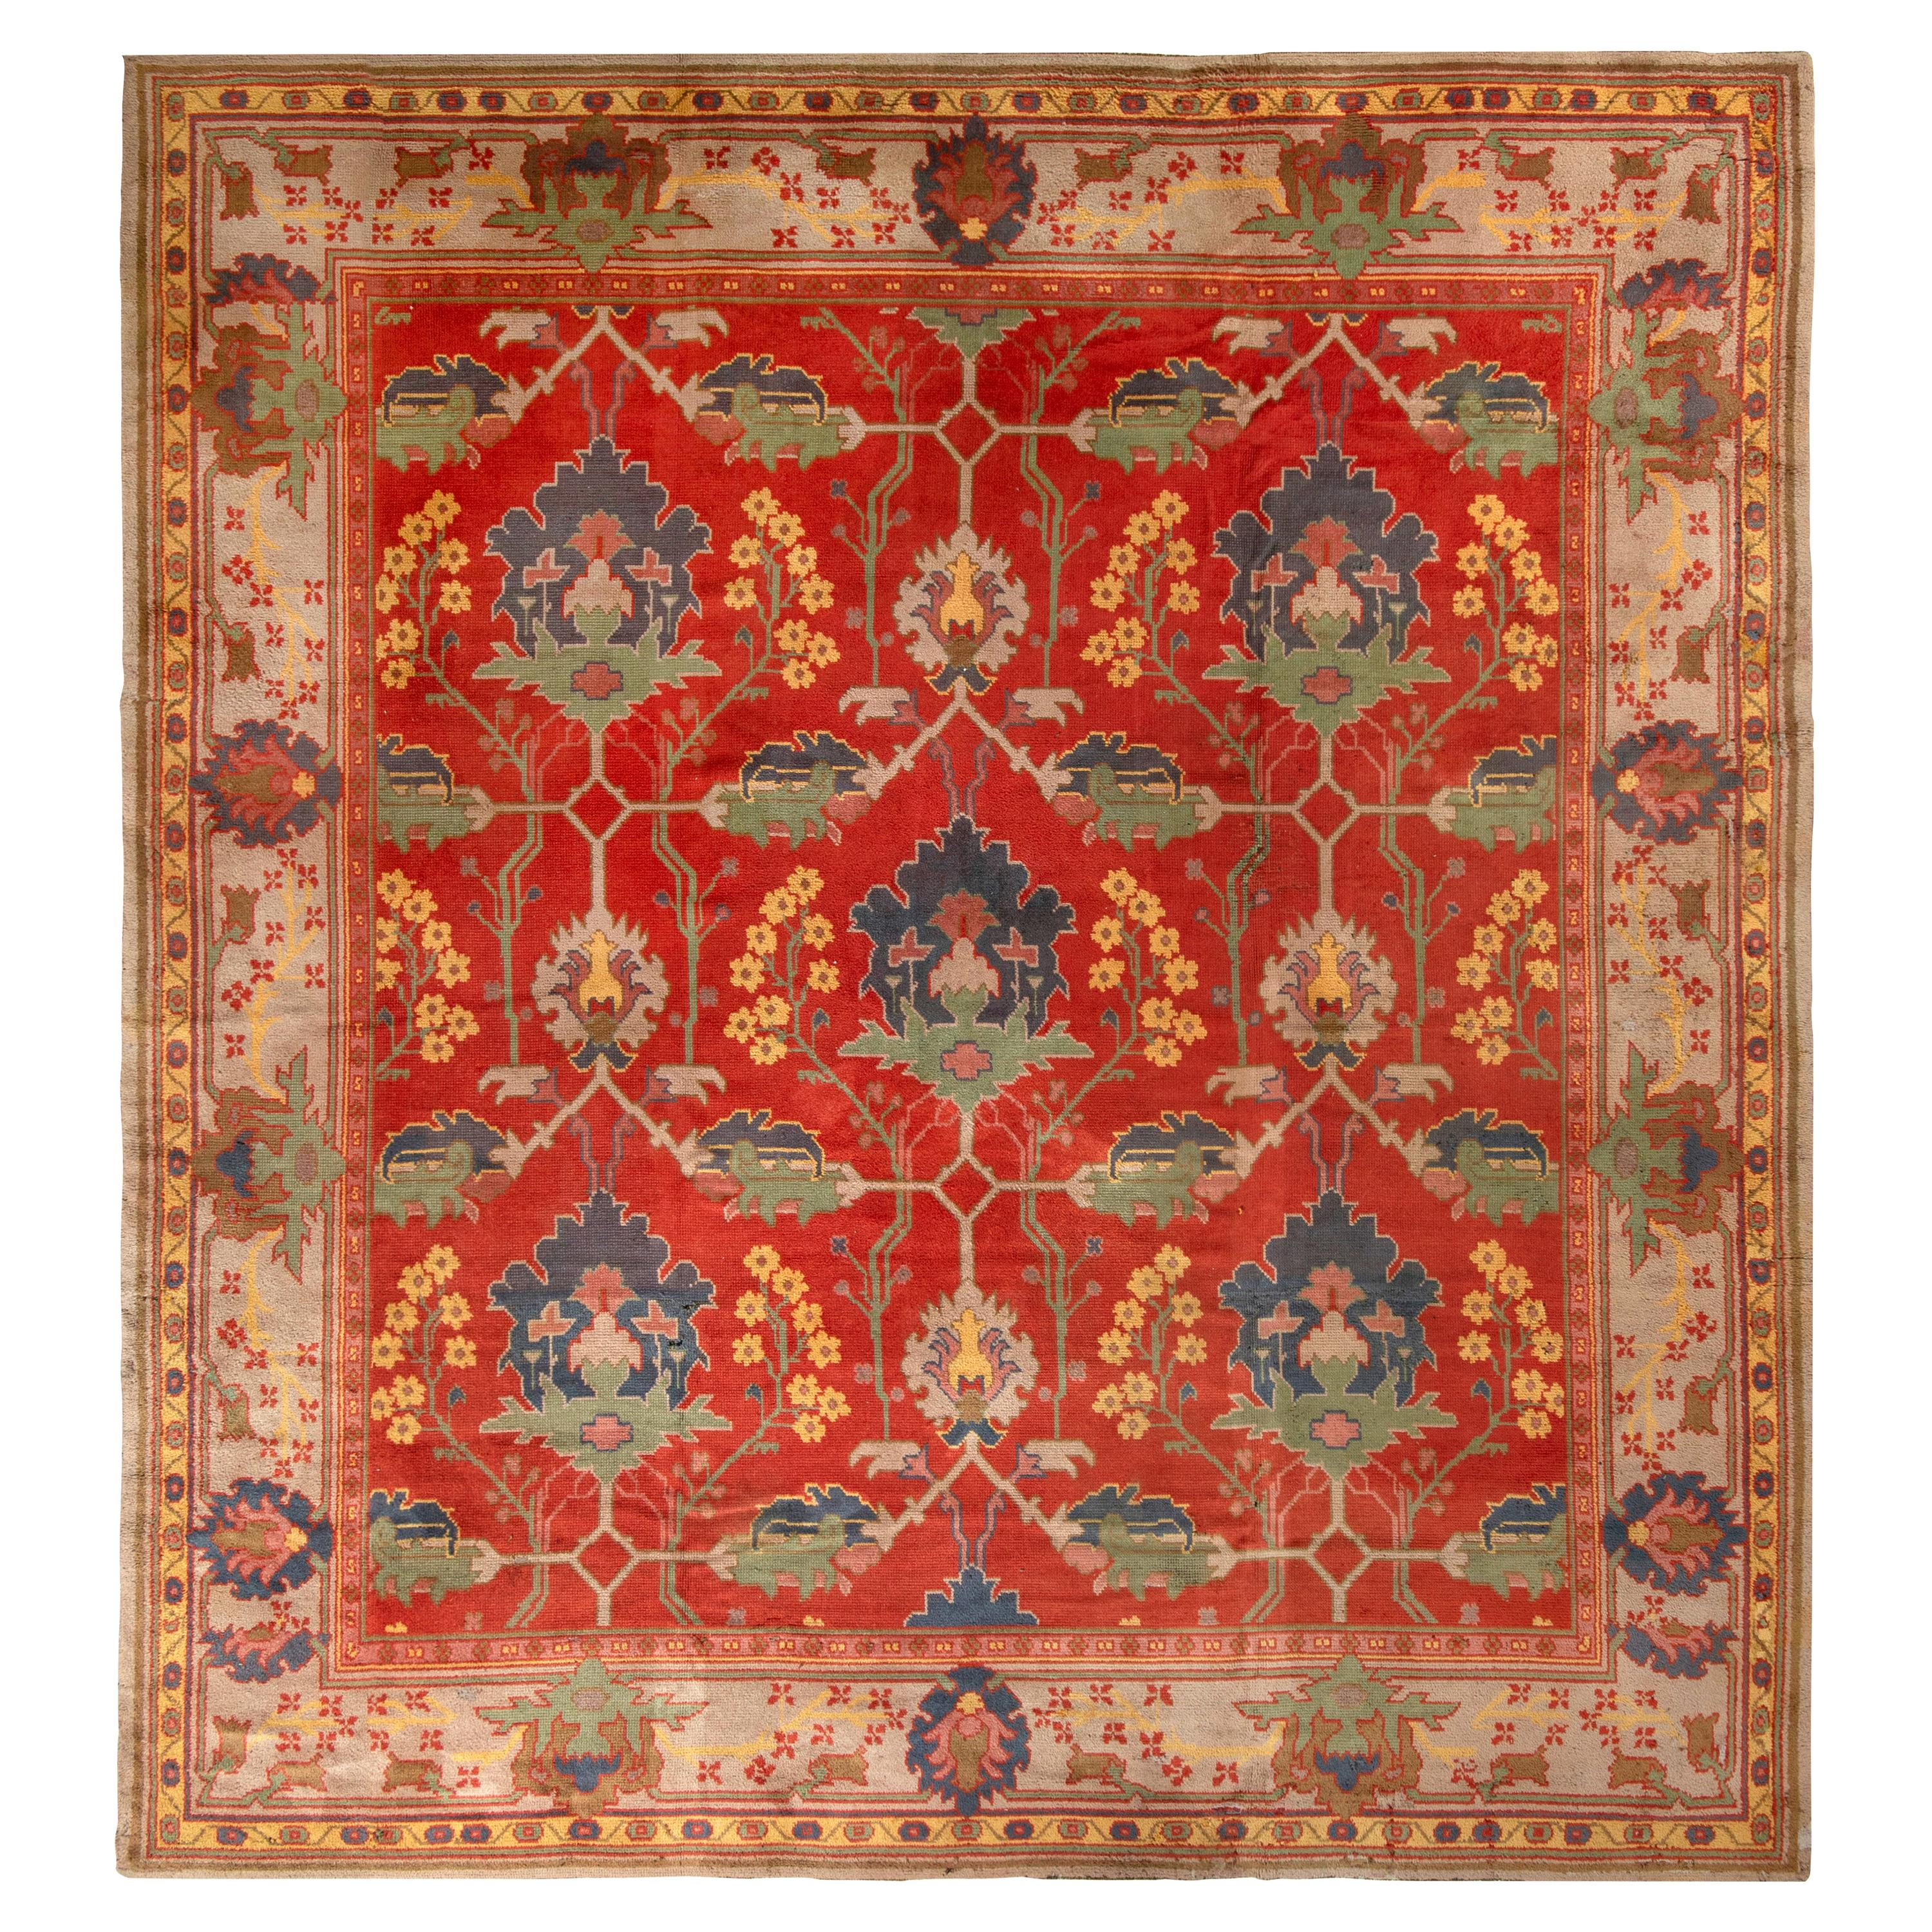 Hand-Knotted Antique Voysey Arts & Crafts Rug in Red and Beige-Brown Floral